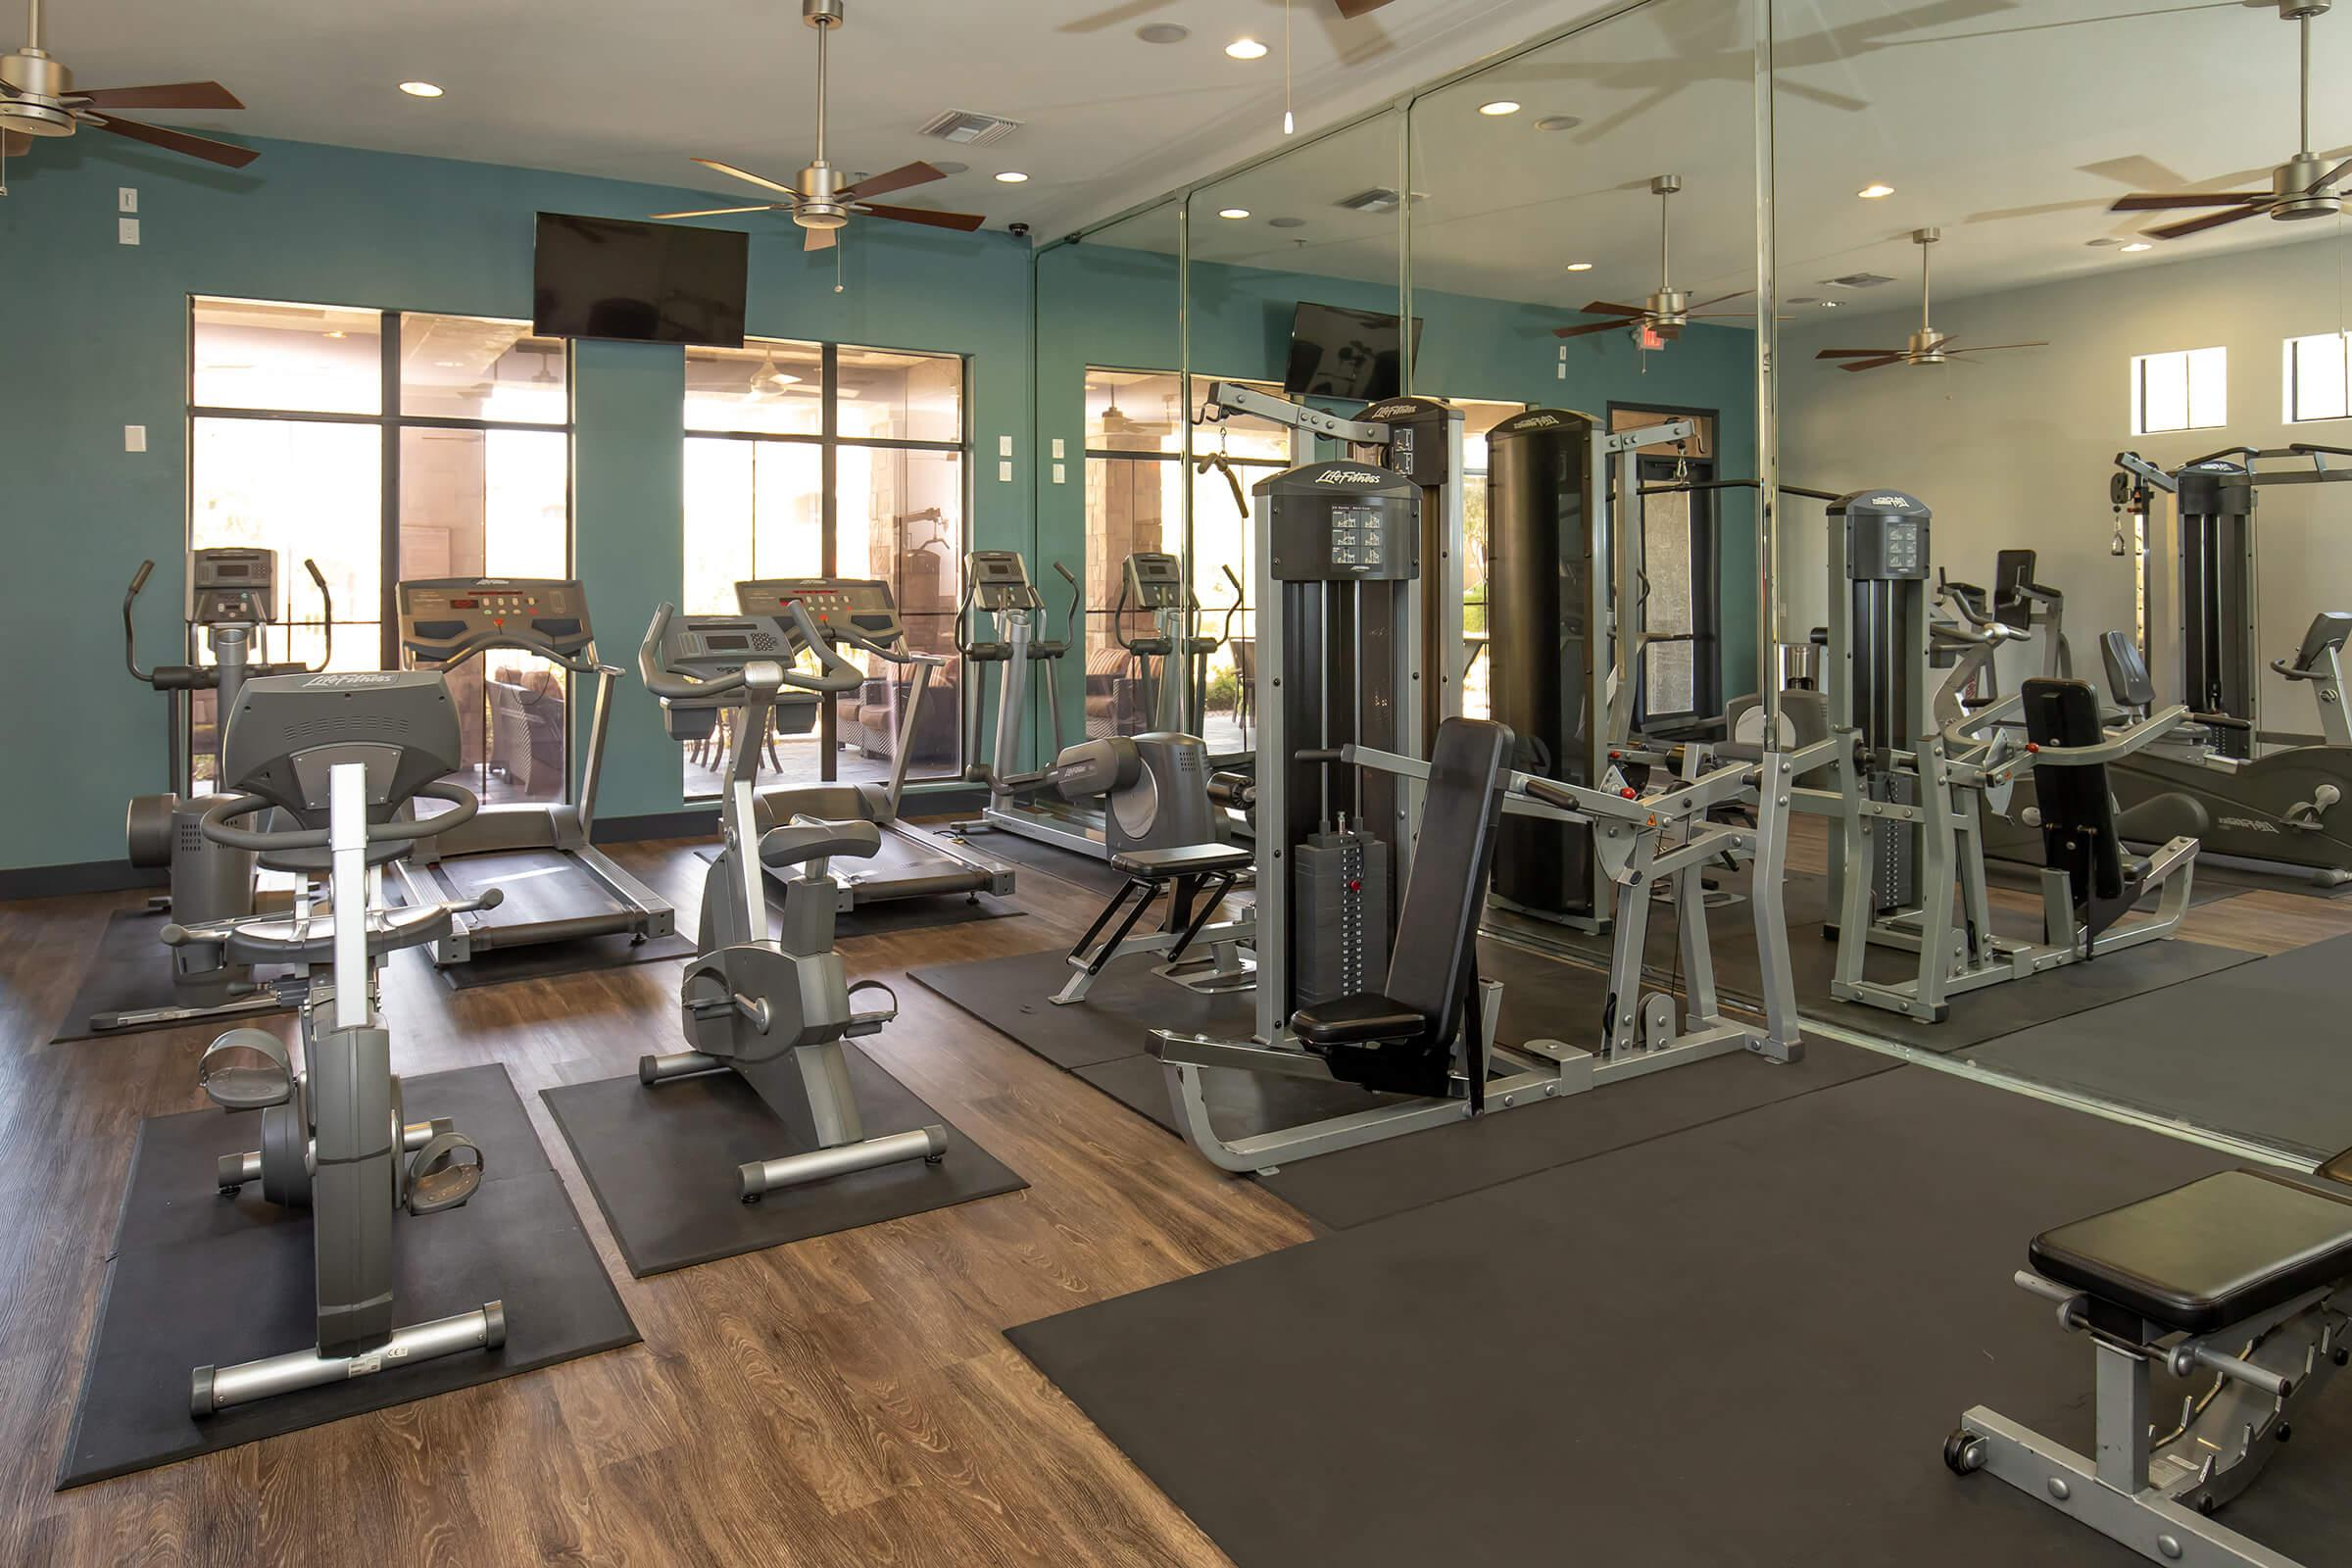 STAY FIT WITH OUR EXERCISE FACILITY